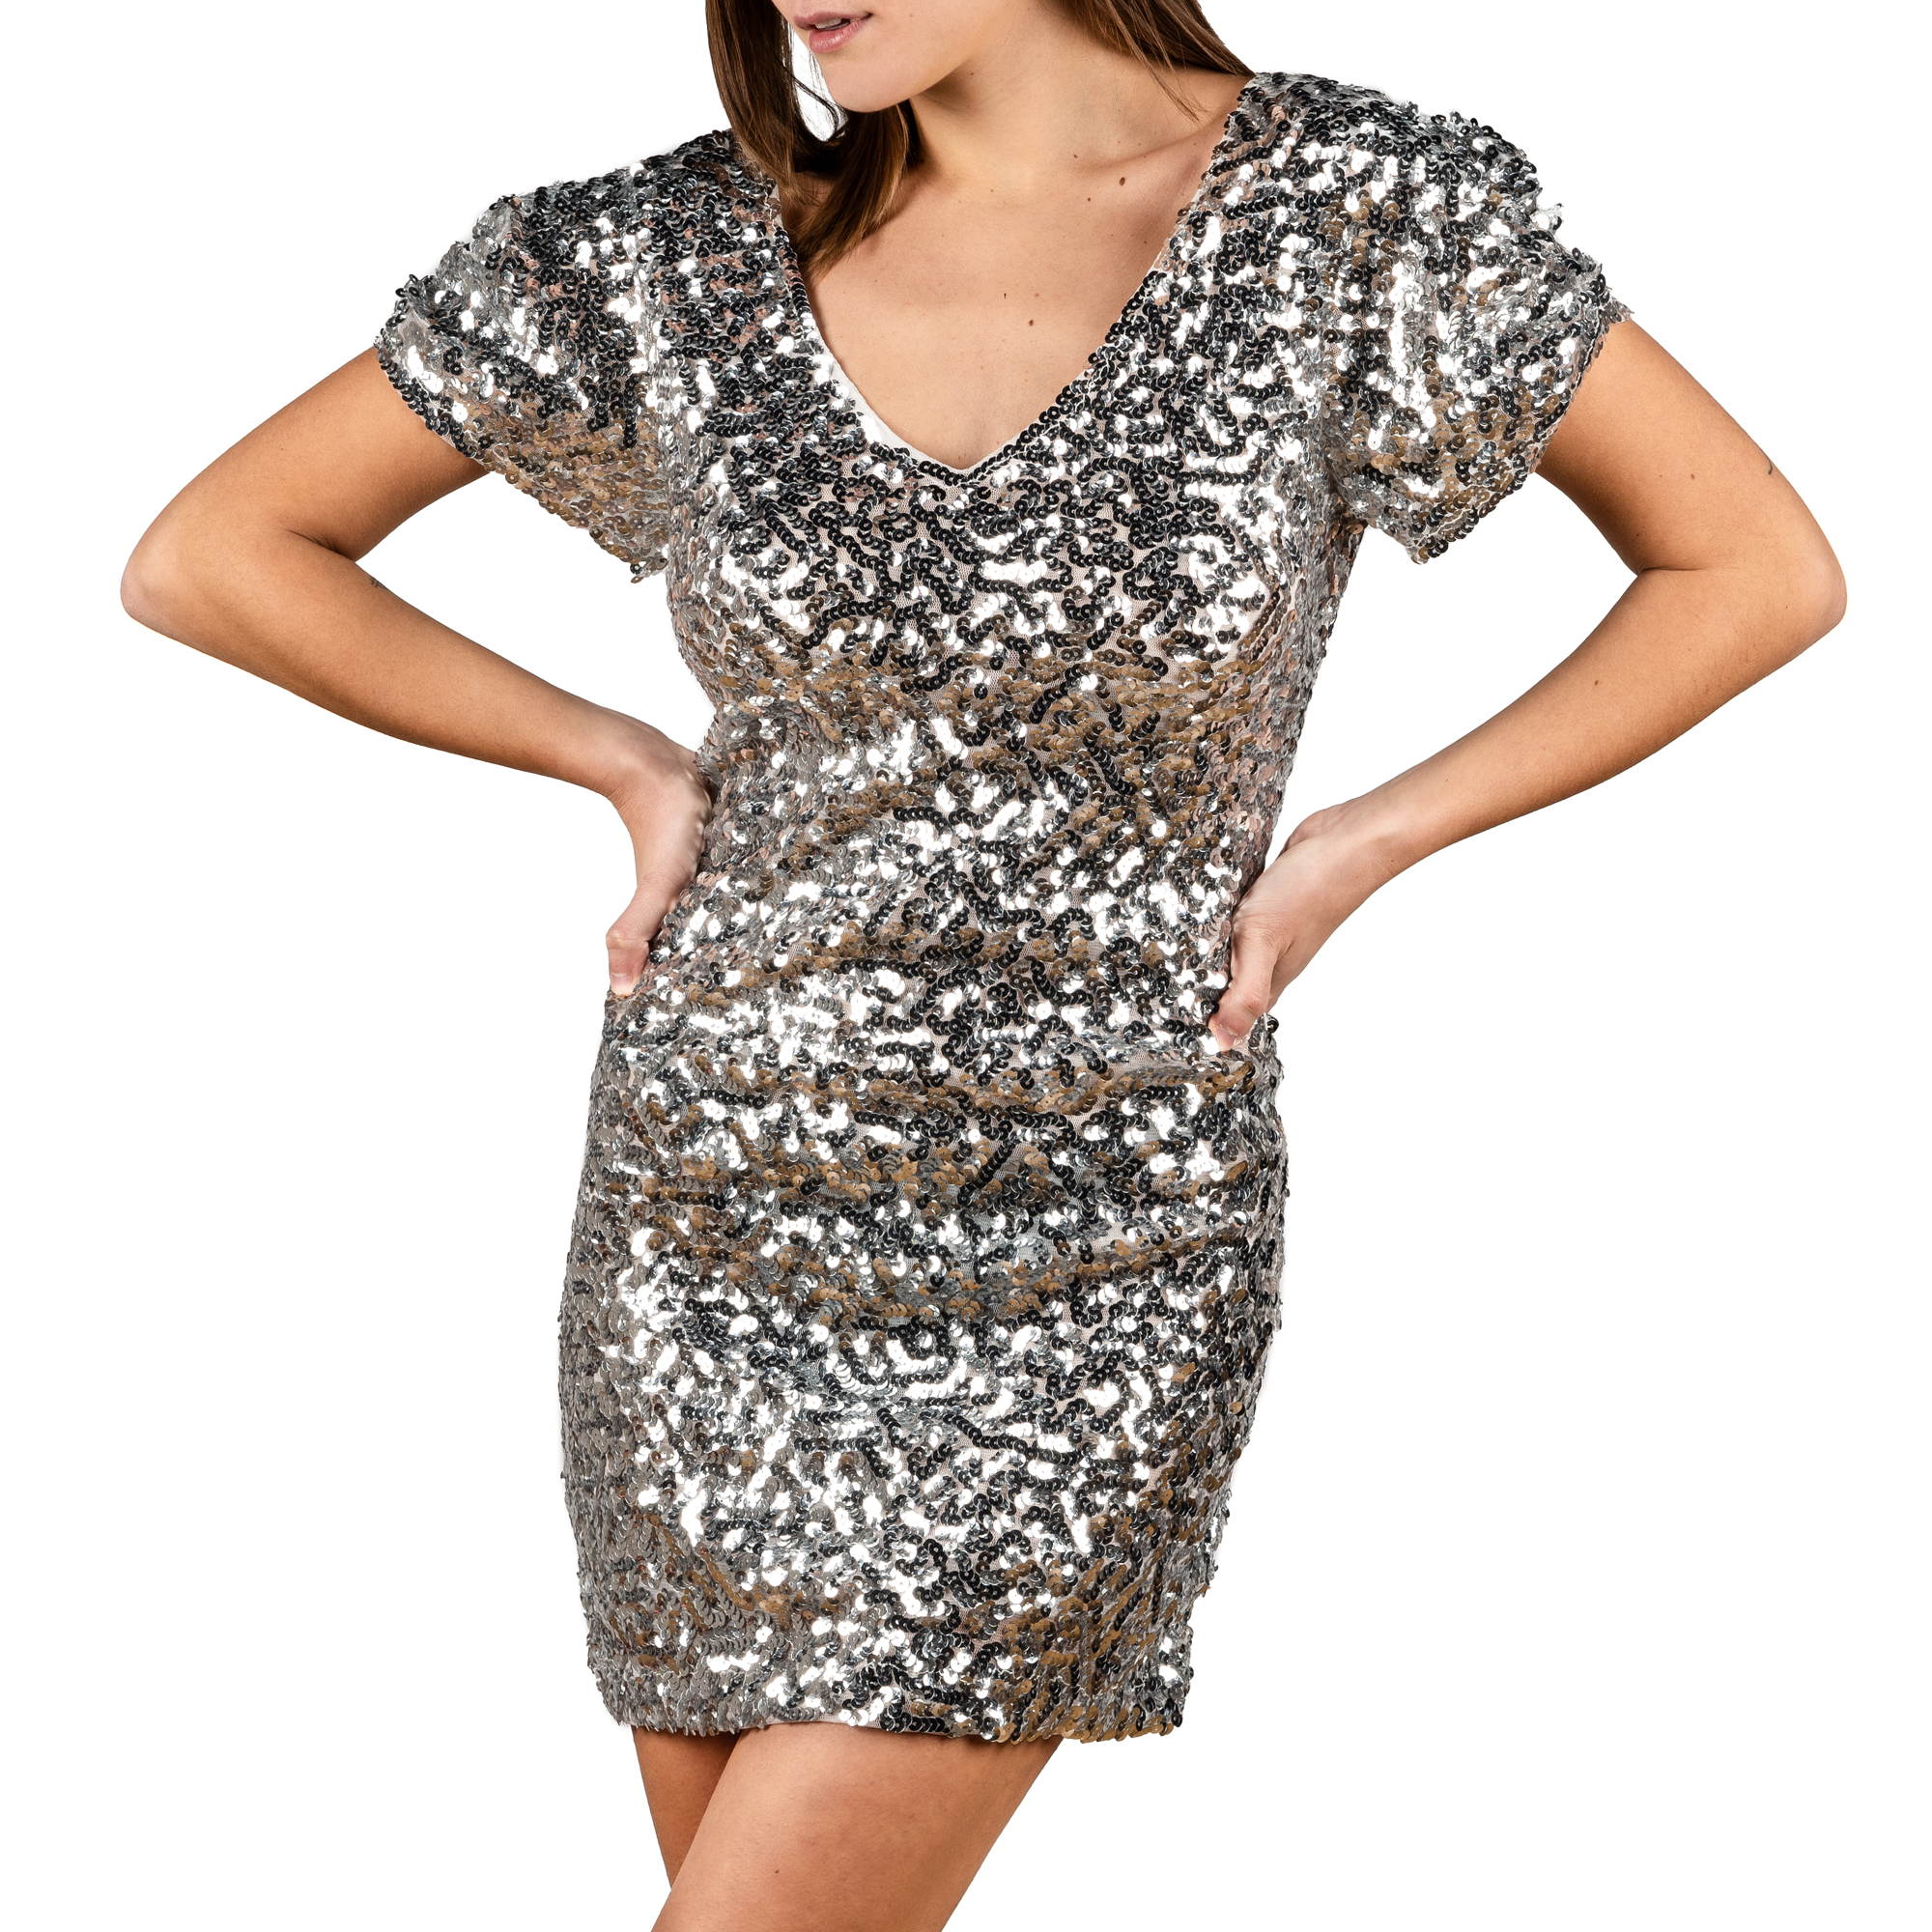 Minidress argento con paillettes